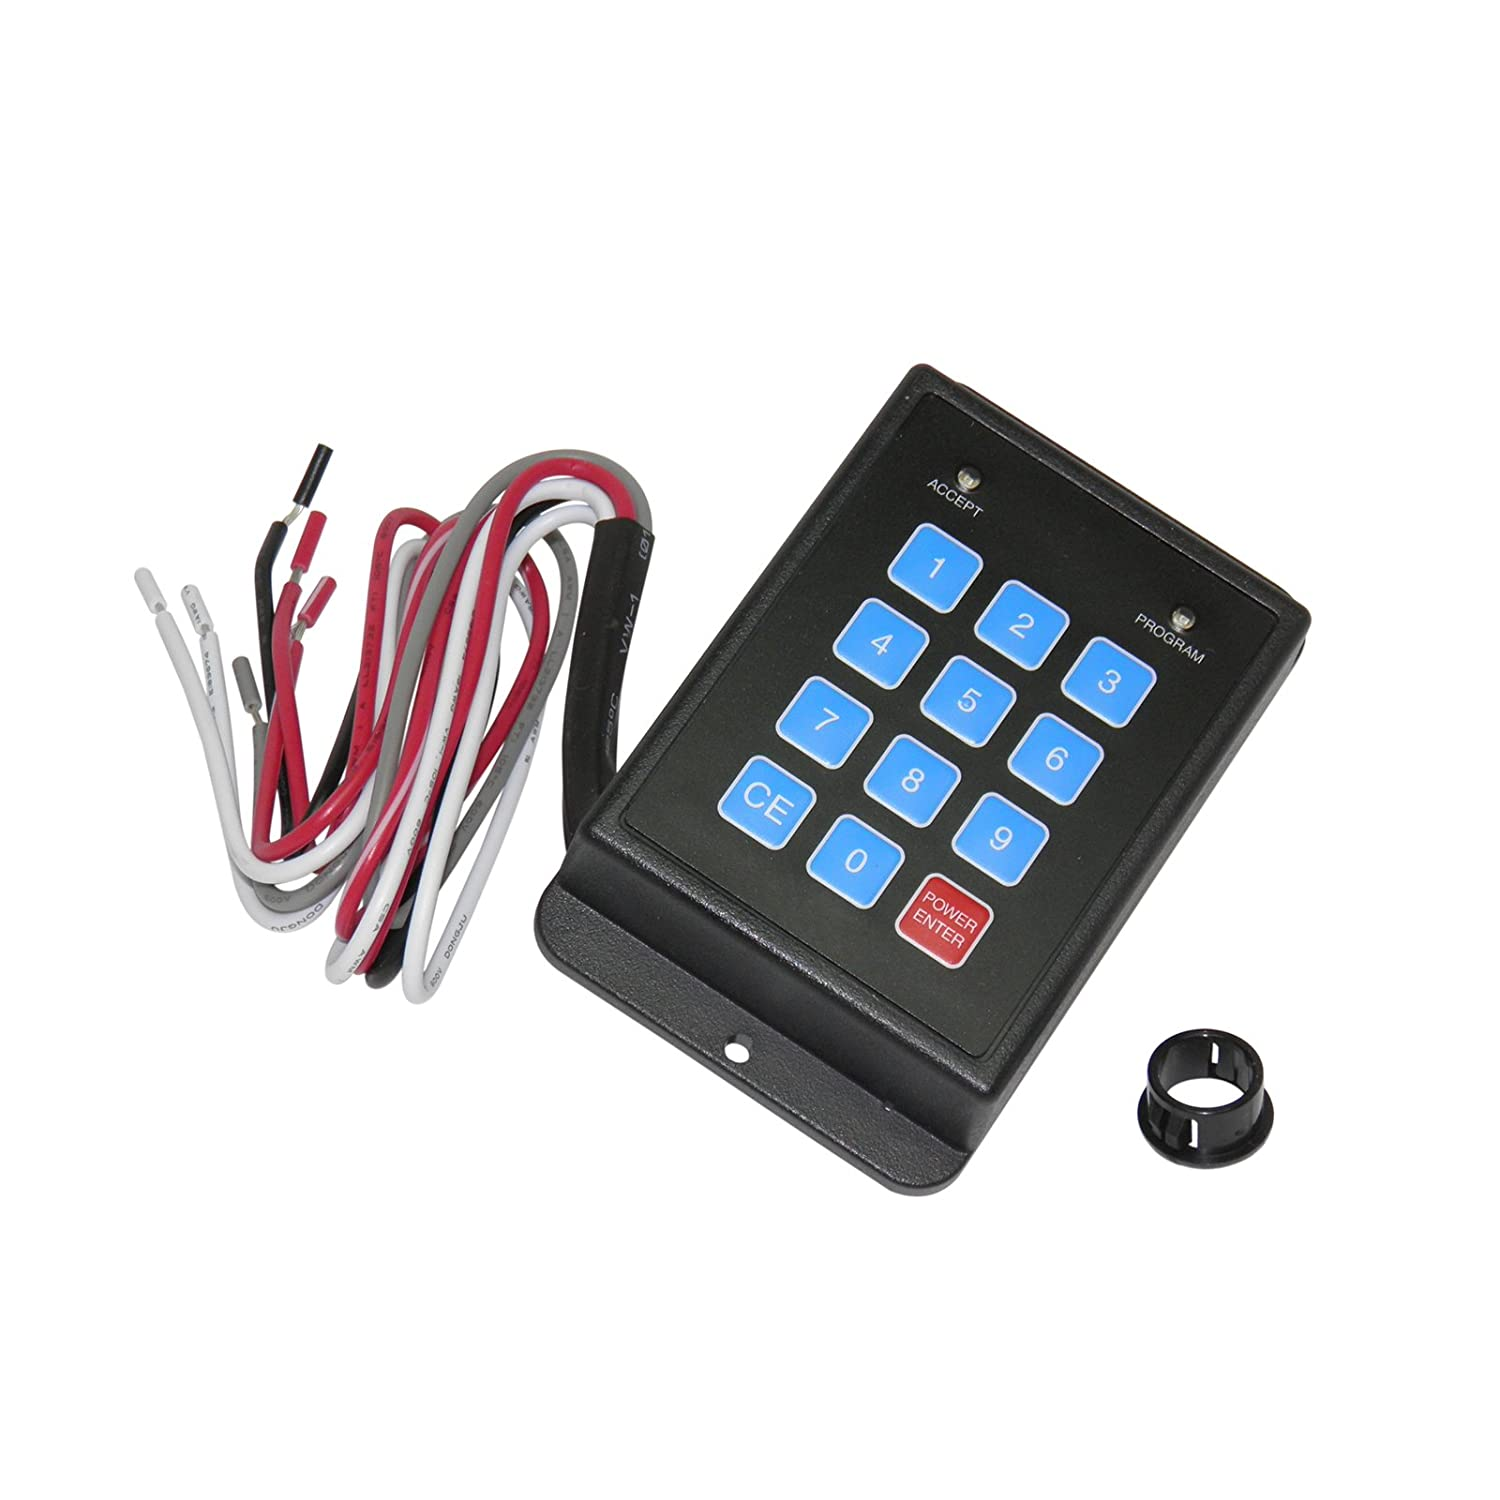 12-120 VDC up to 99 adjustable user and 1 supervisor code TOTALSOURCE 3661343007544 Programmable security safe-t-lock